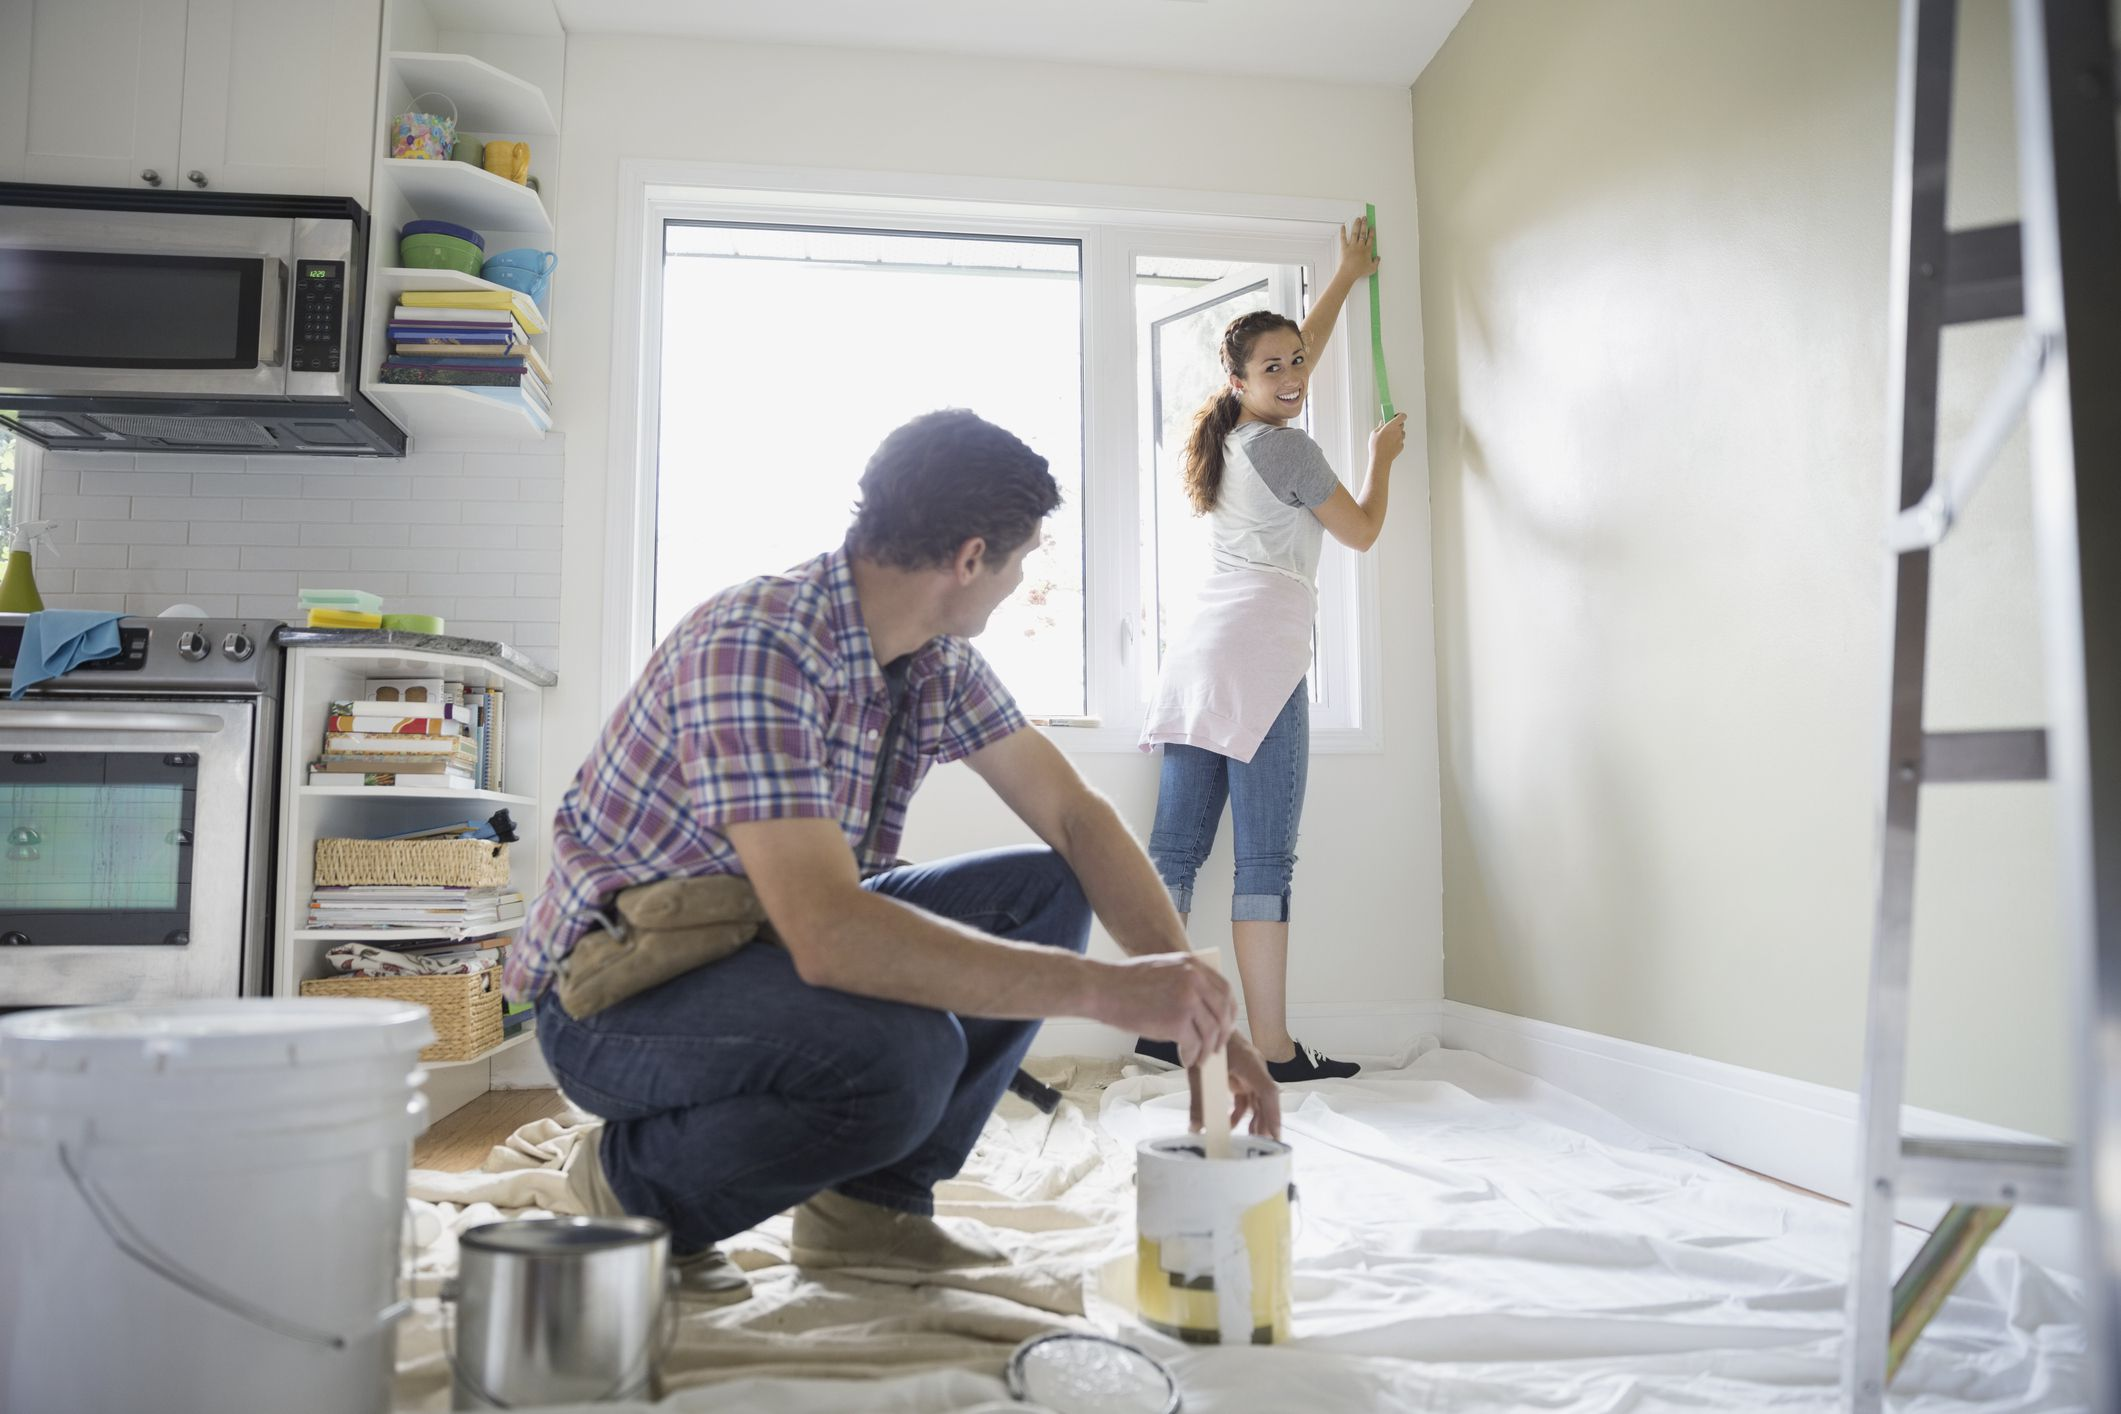 How to Improve Your Rental Property and Make it Desirable to Tenants